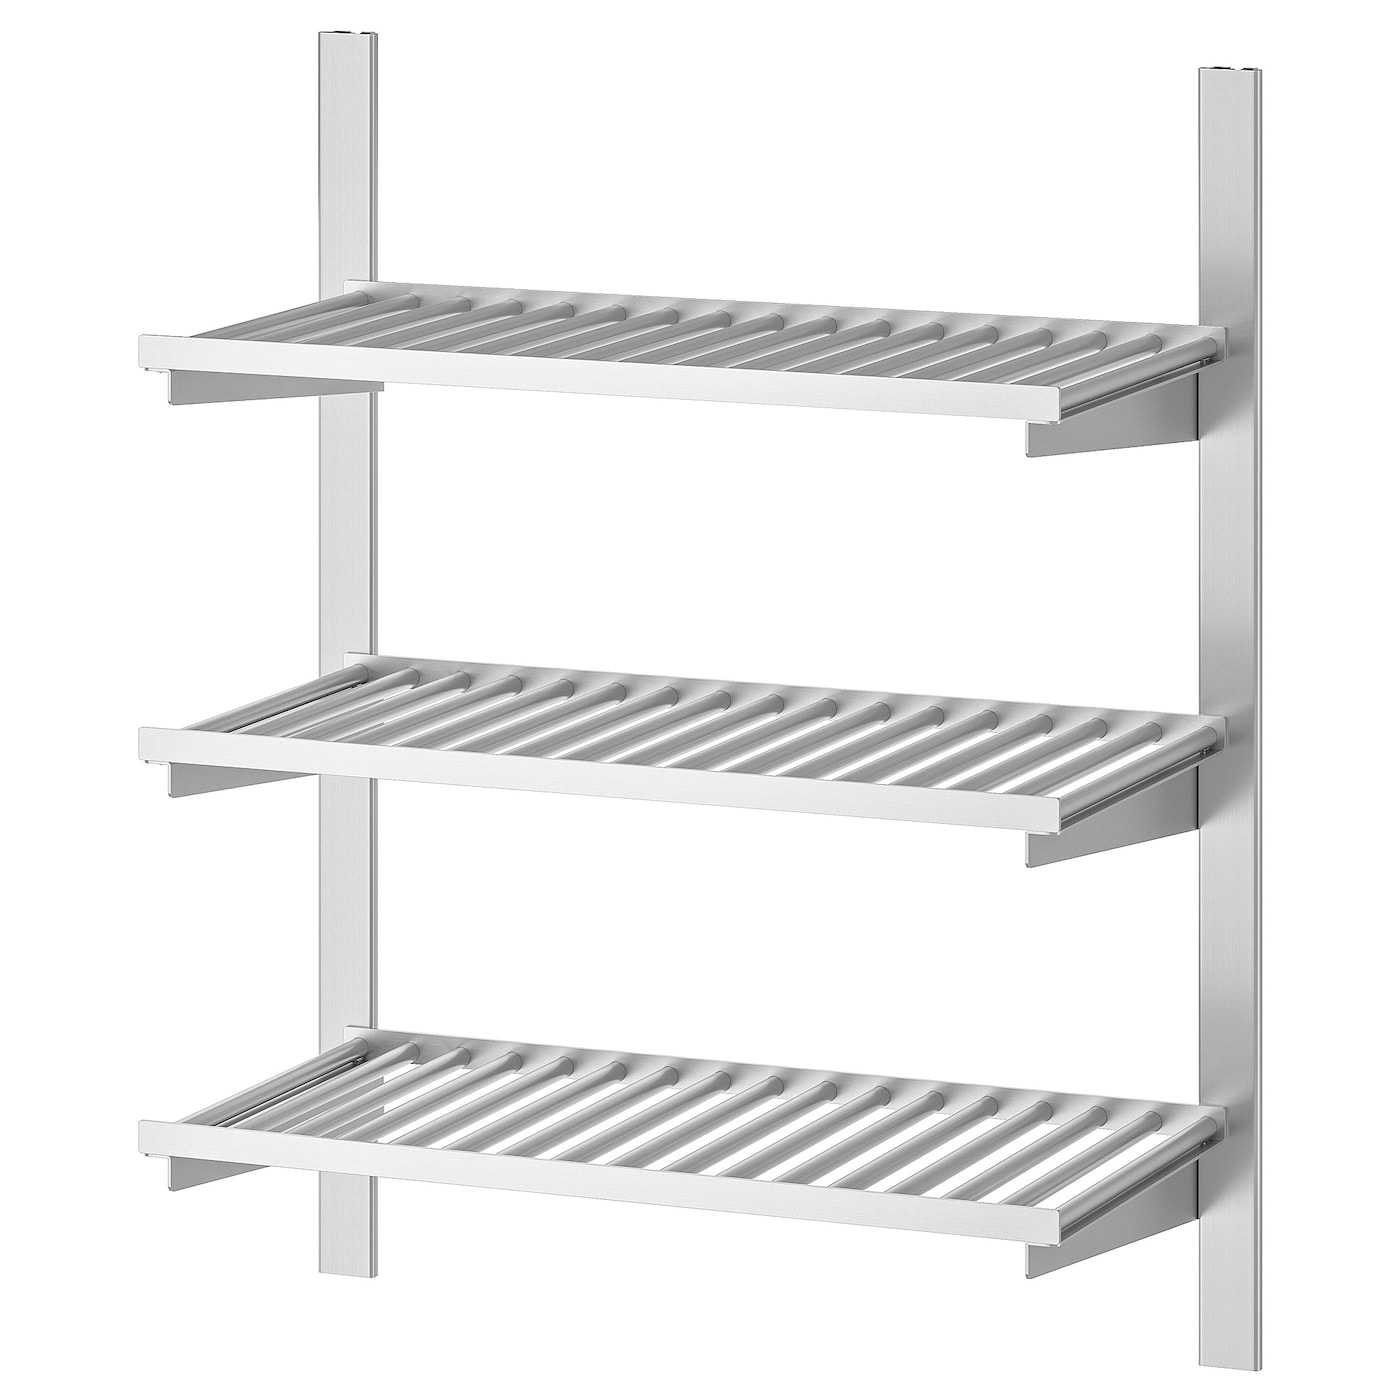 IKEA KUNGSFORS suspension rail with shelves Gives you extra storage in your kitchen.